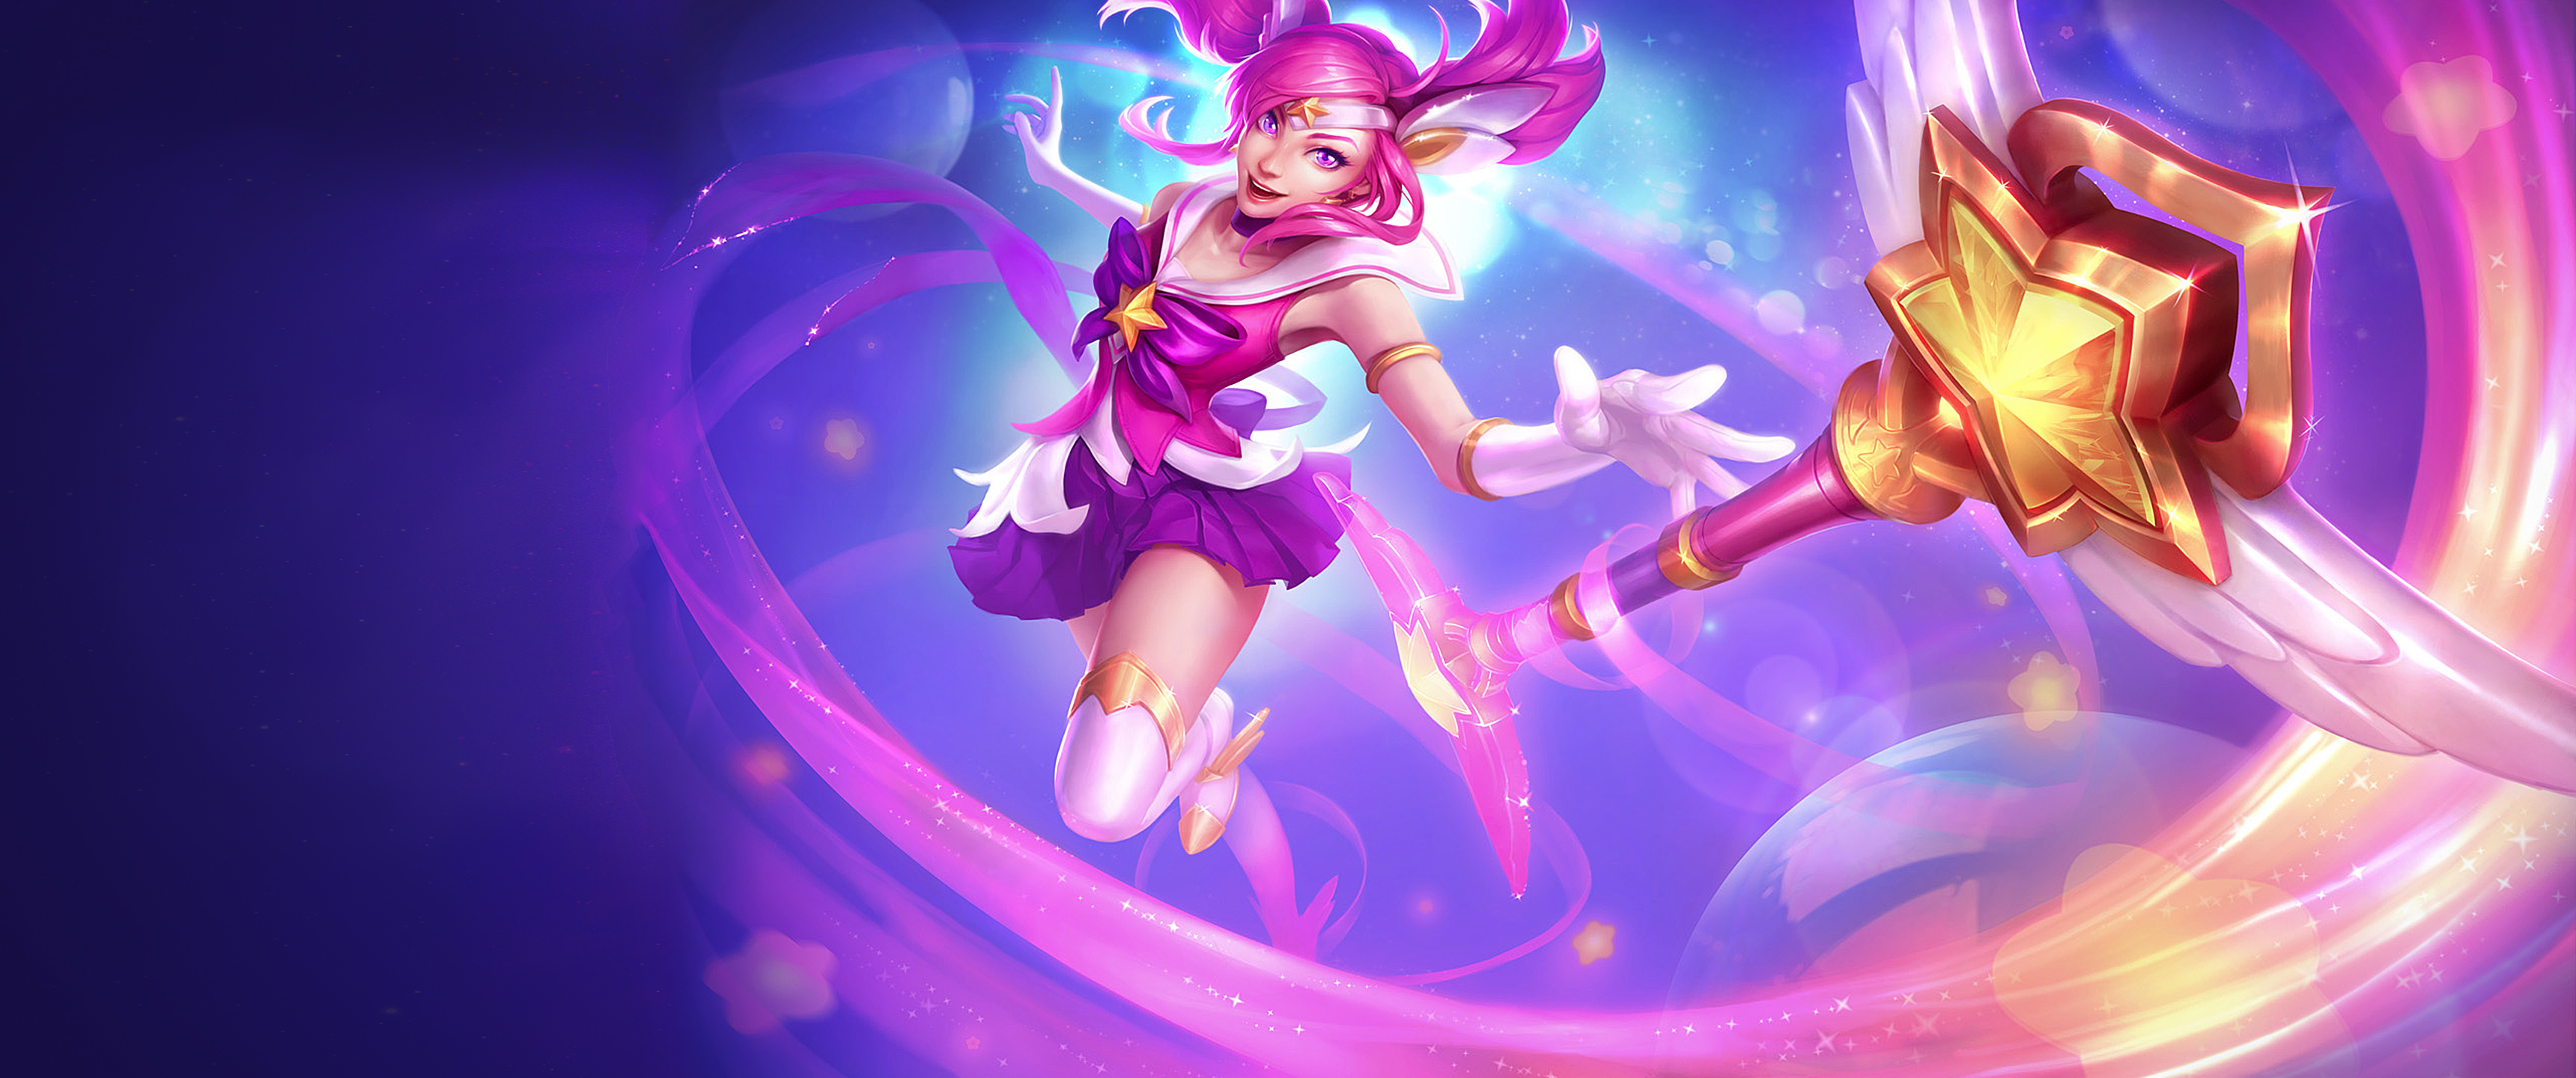 L Double Monitor Girl Wallpapers Star Guardian Lux Full Hd Fond D 233 Cran And Arri 232 Re Plan